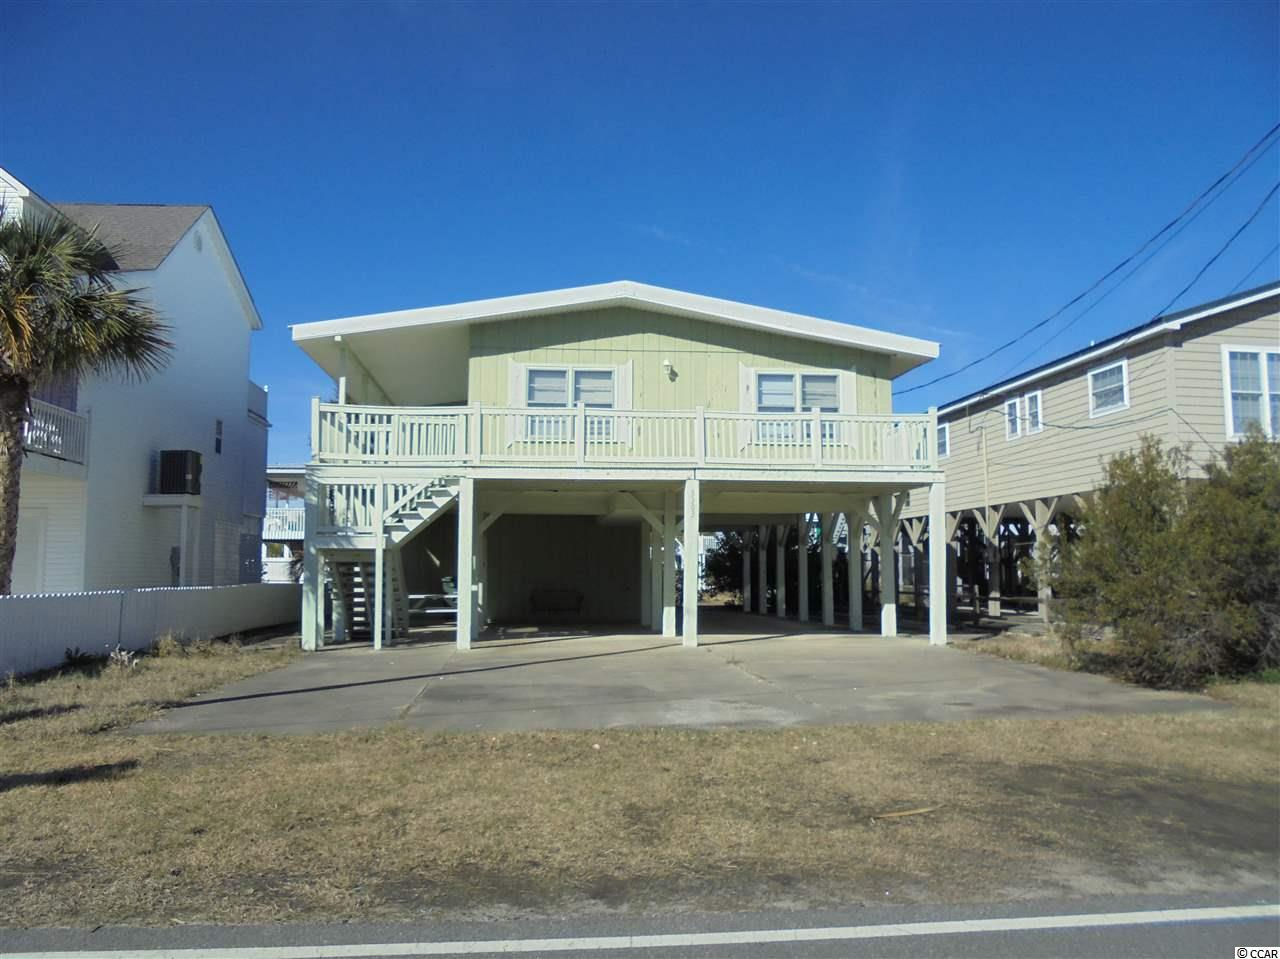 There is a little 'Ocean Peak' from the balcony. This home is in a very nice area of Cherry Grove only one block to the beach. There is a beach shower with hot and cold running water, big storage area & utility room on ground floor. This home could be fixed up to be a charming beach get away cottage or a tear down for a beautiful home only a block from the Blue Atlantic. Sold furnished, but a few items do not convey.